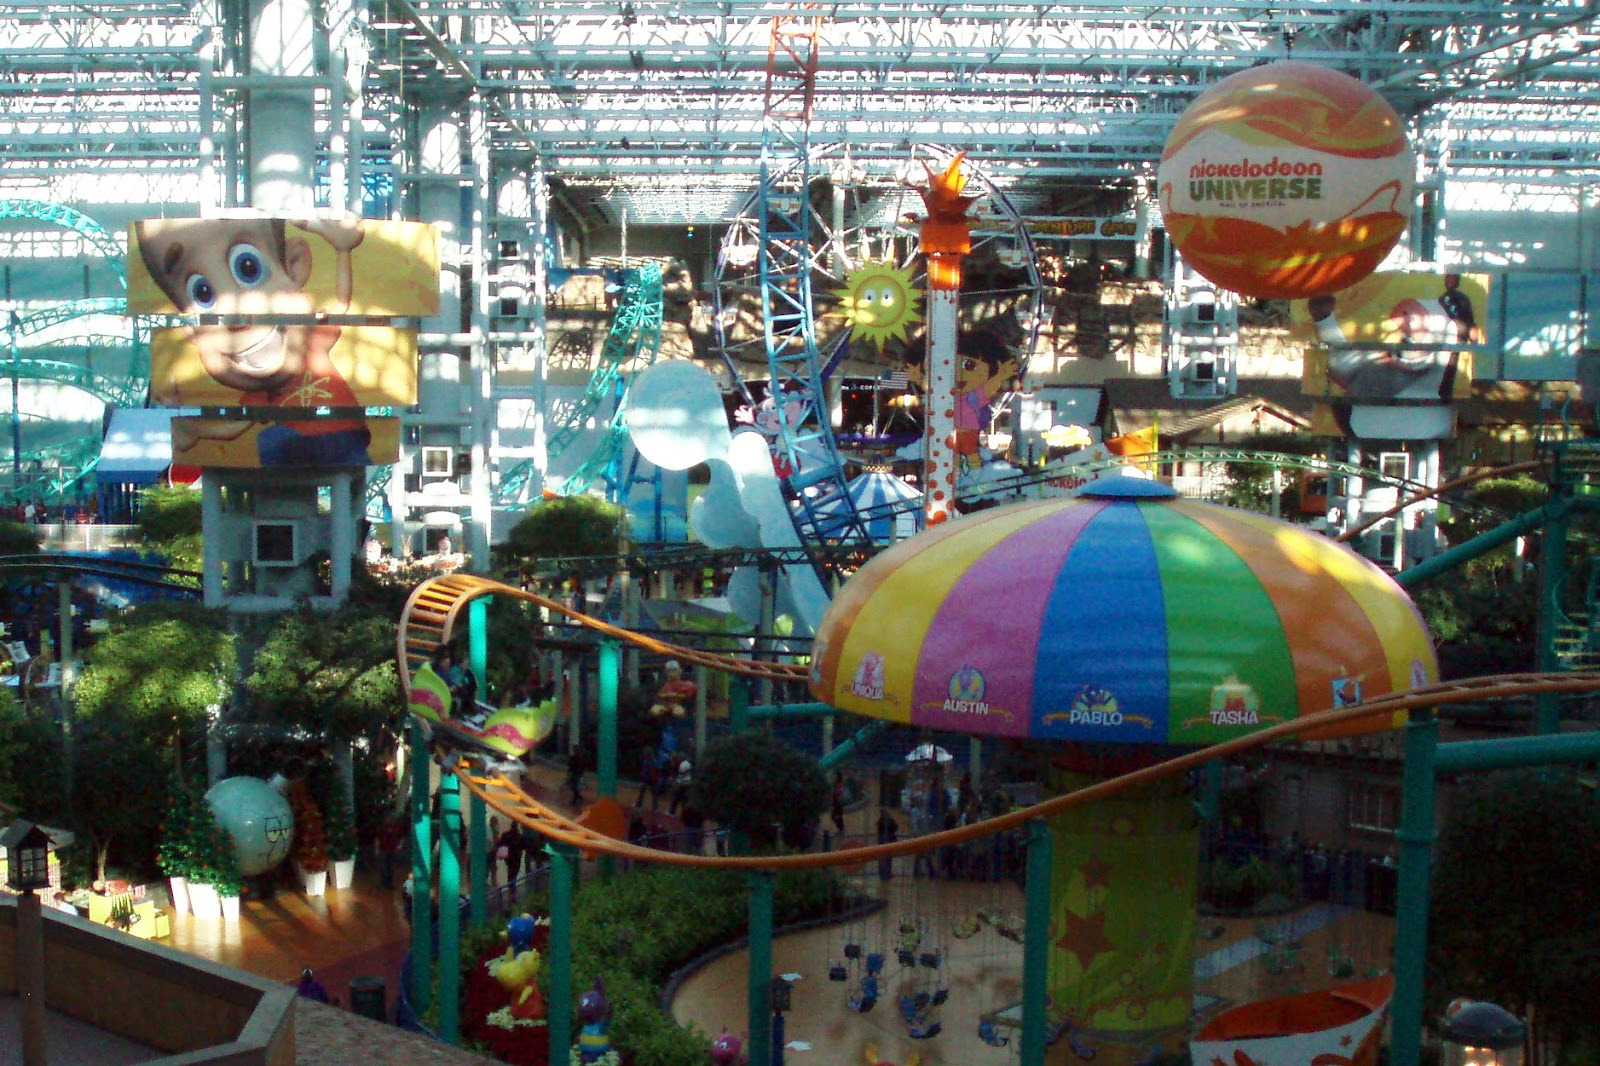 About Nickelodeon Universe. Enjoy a day full of fun at the 7-acre indoor amusement park of Nickelodeon Universe.